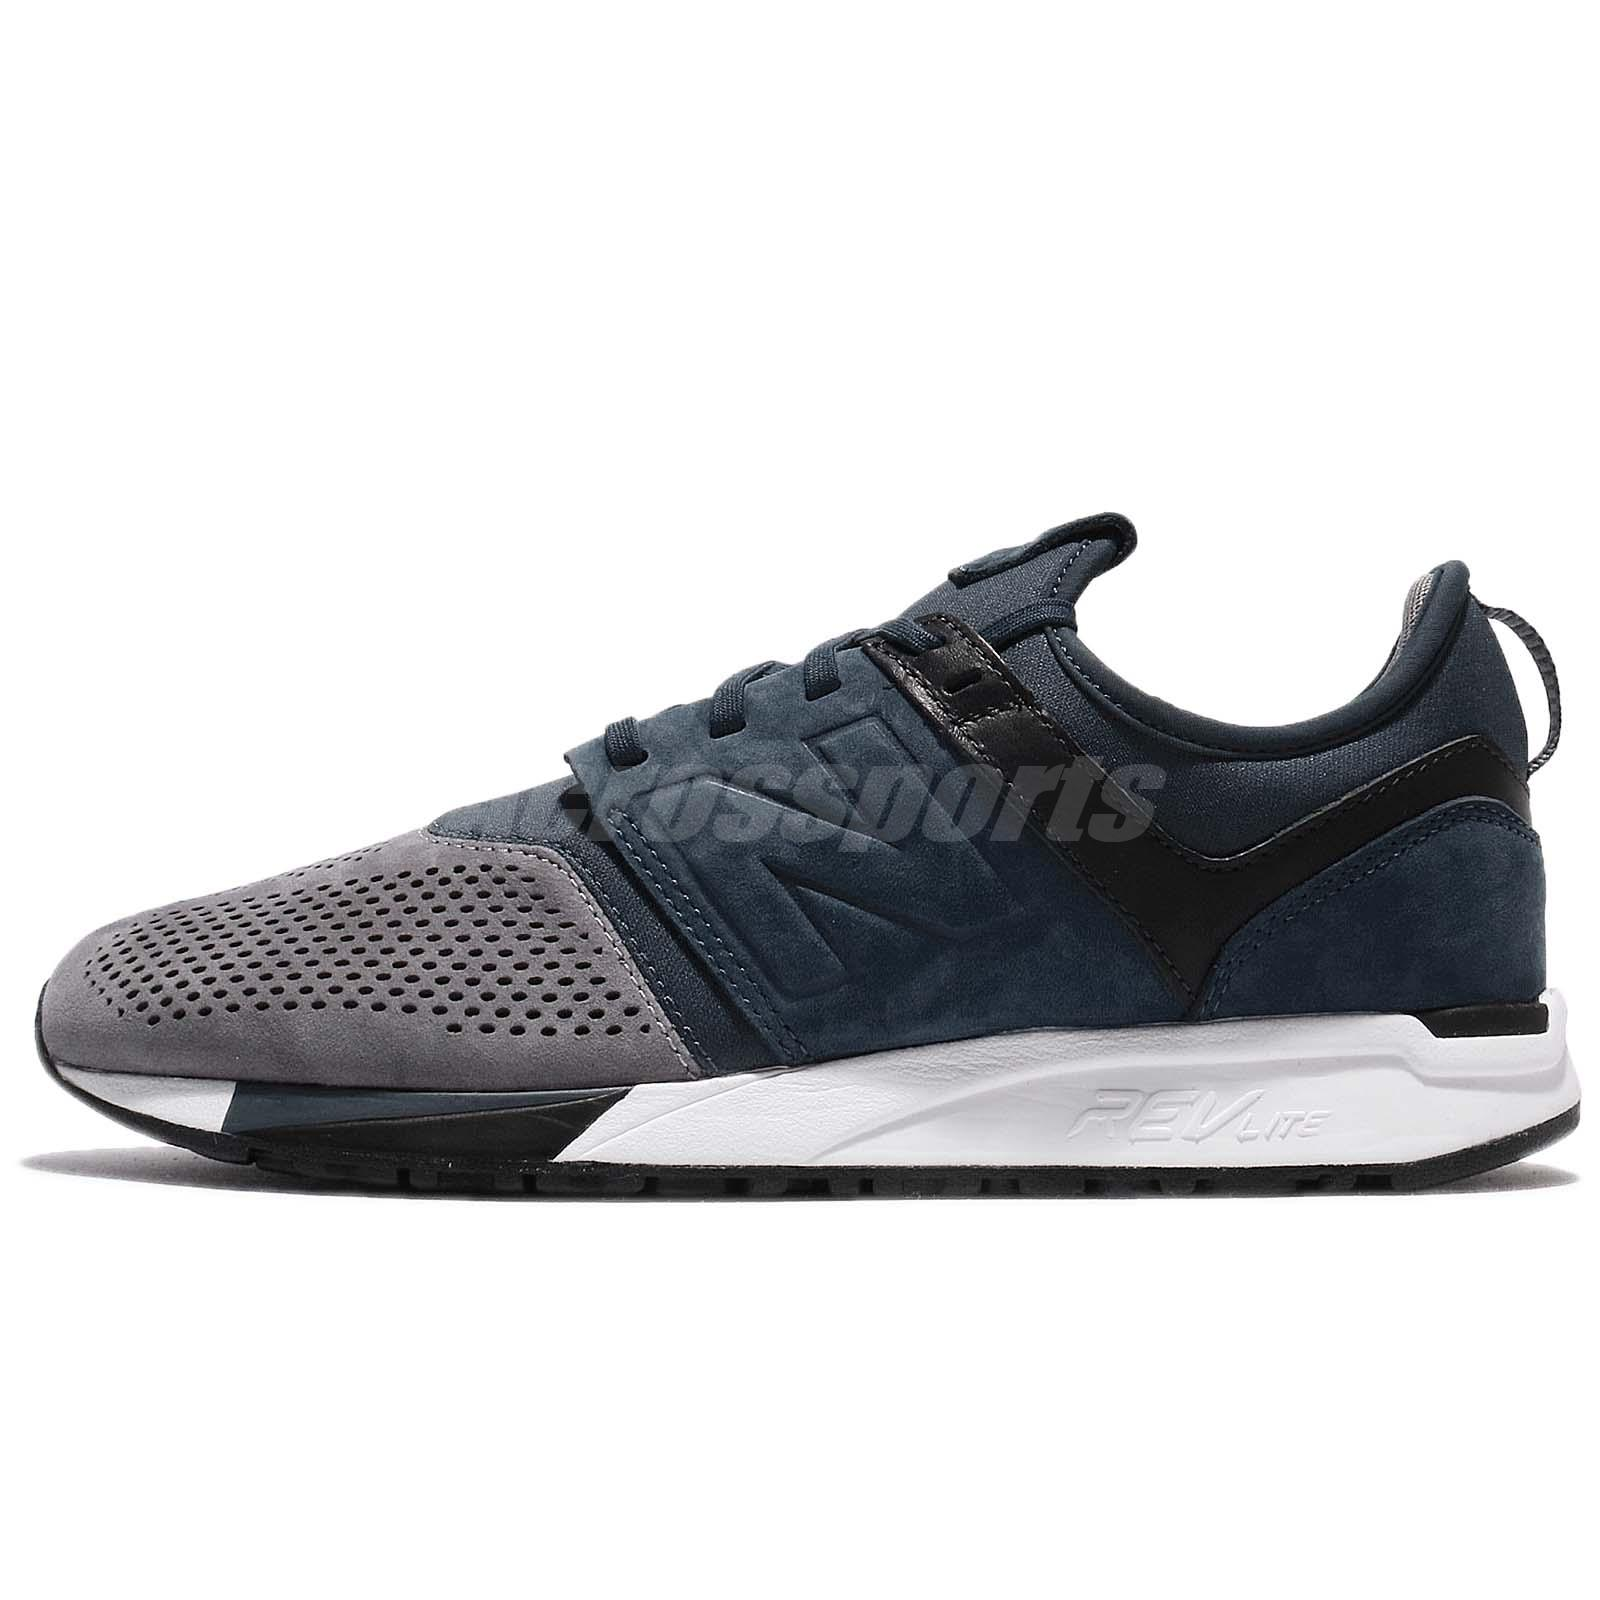 Details about New Balance MRL247N3 D 247 Navy Grey Black Men Running Shoes Sneakers MRL247N3D